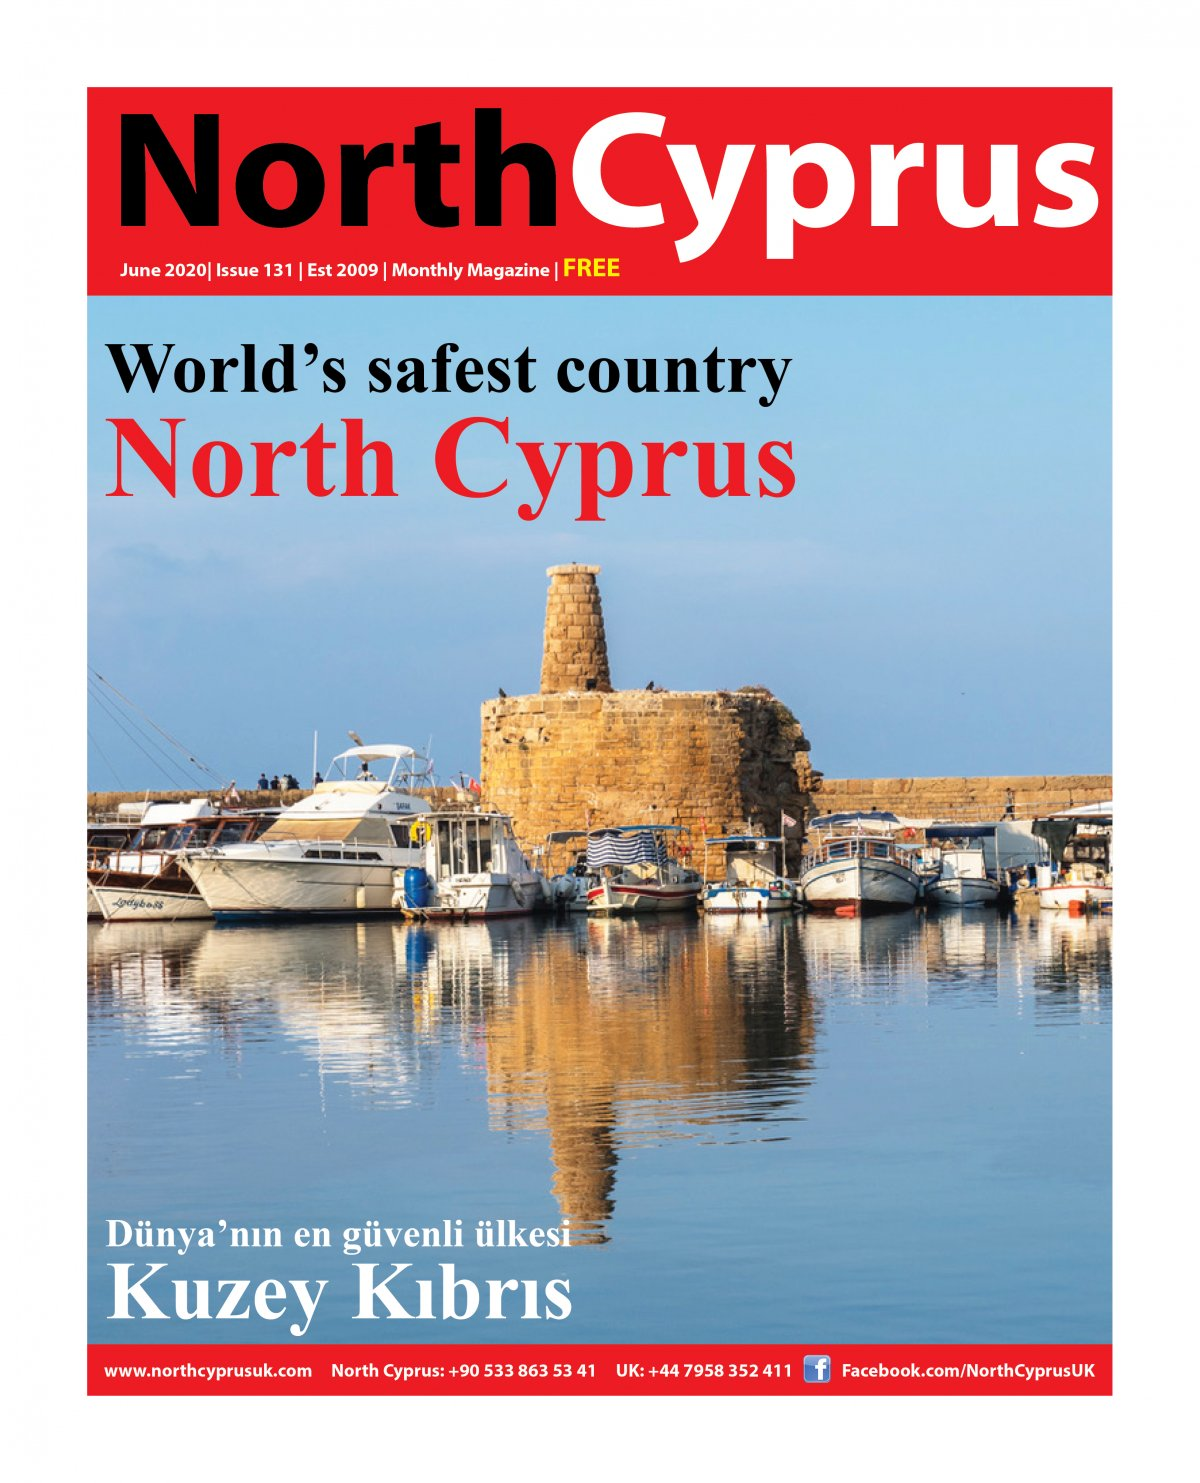 North Cyprus UK - 10.06.2020 Manşeti